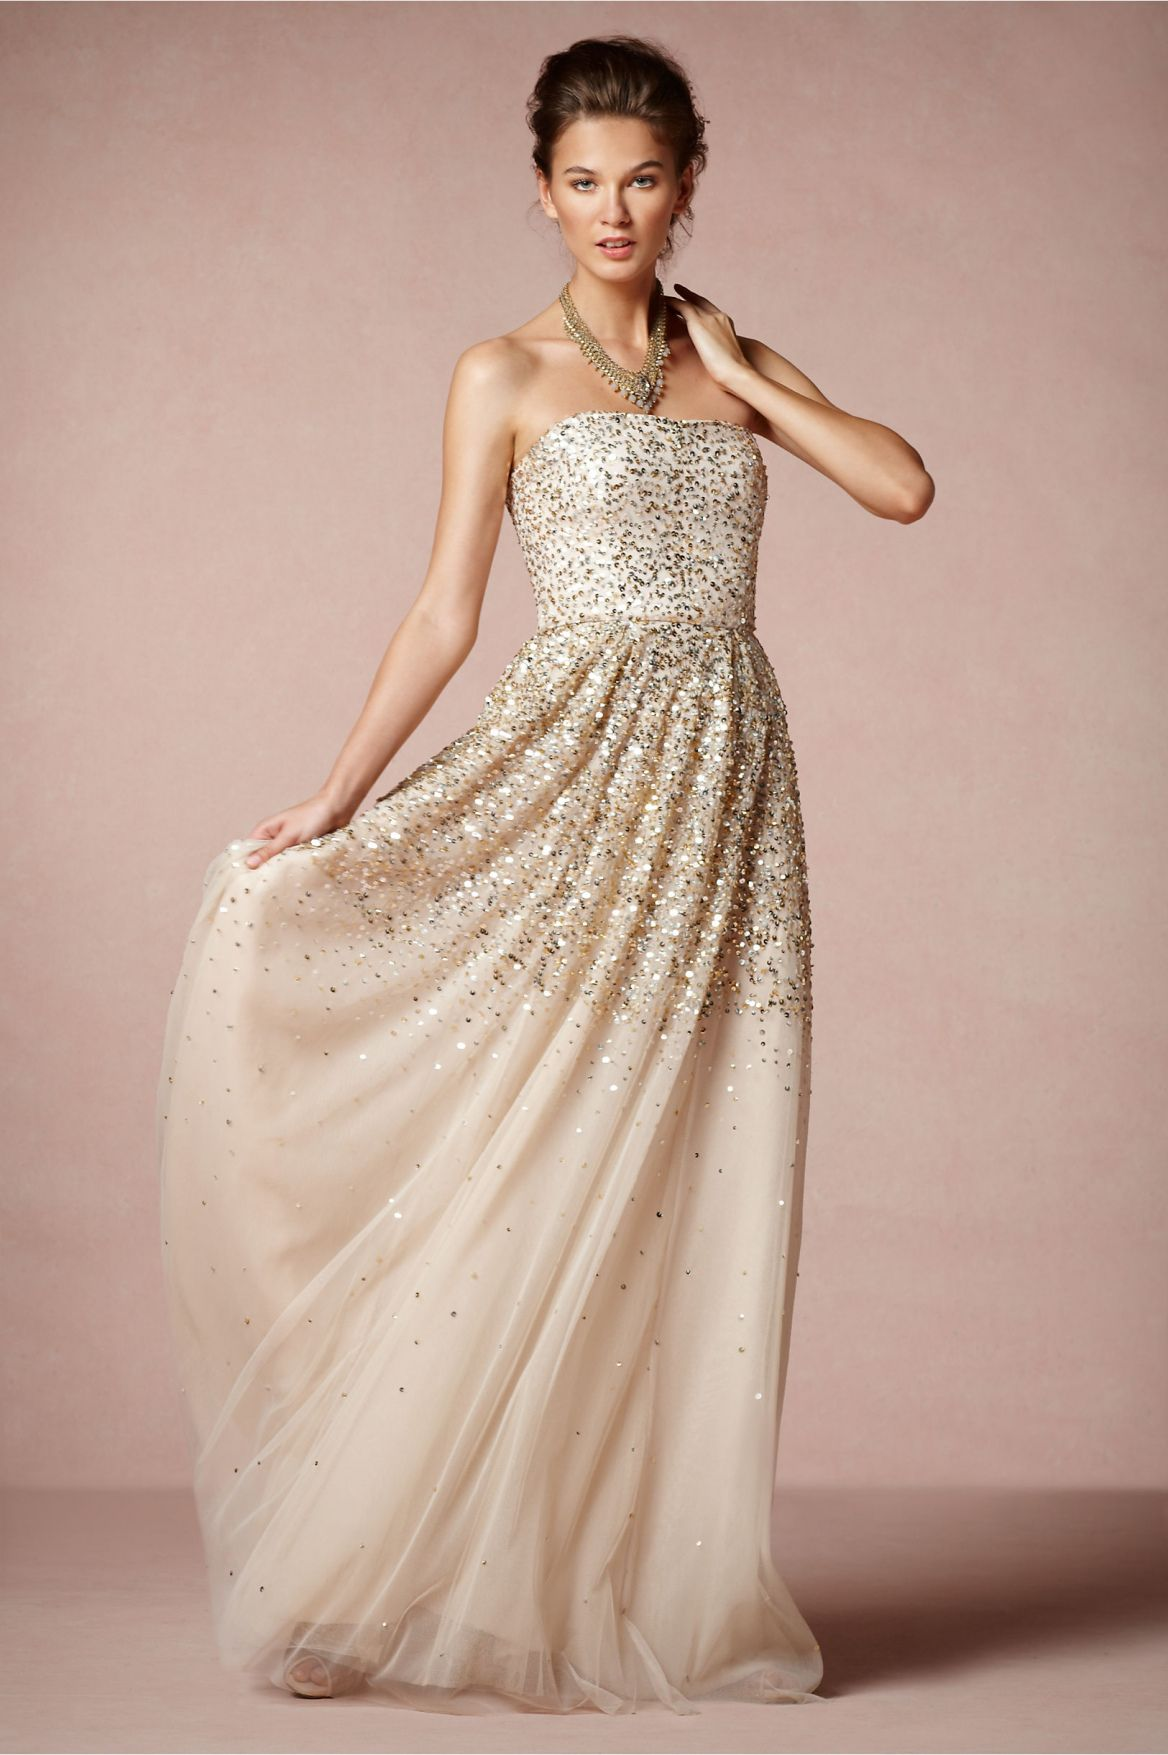 77+ Gold Wedding Dresses for Sale - Wedding Dresses for Plus Size ...